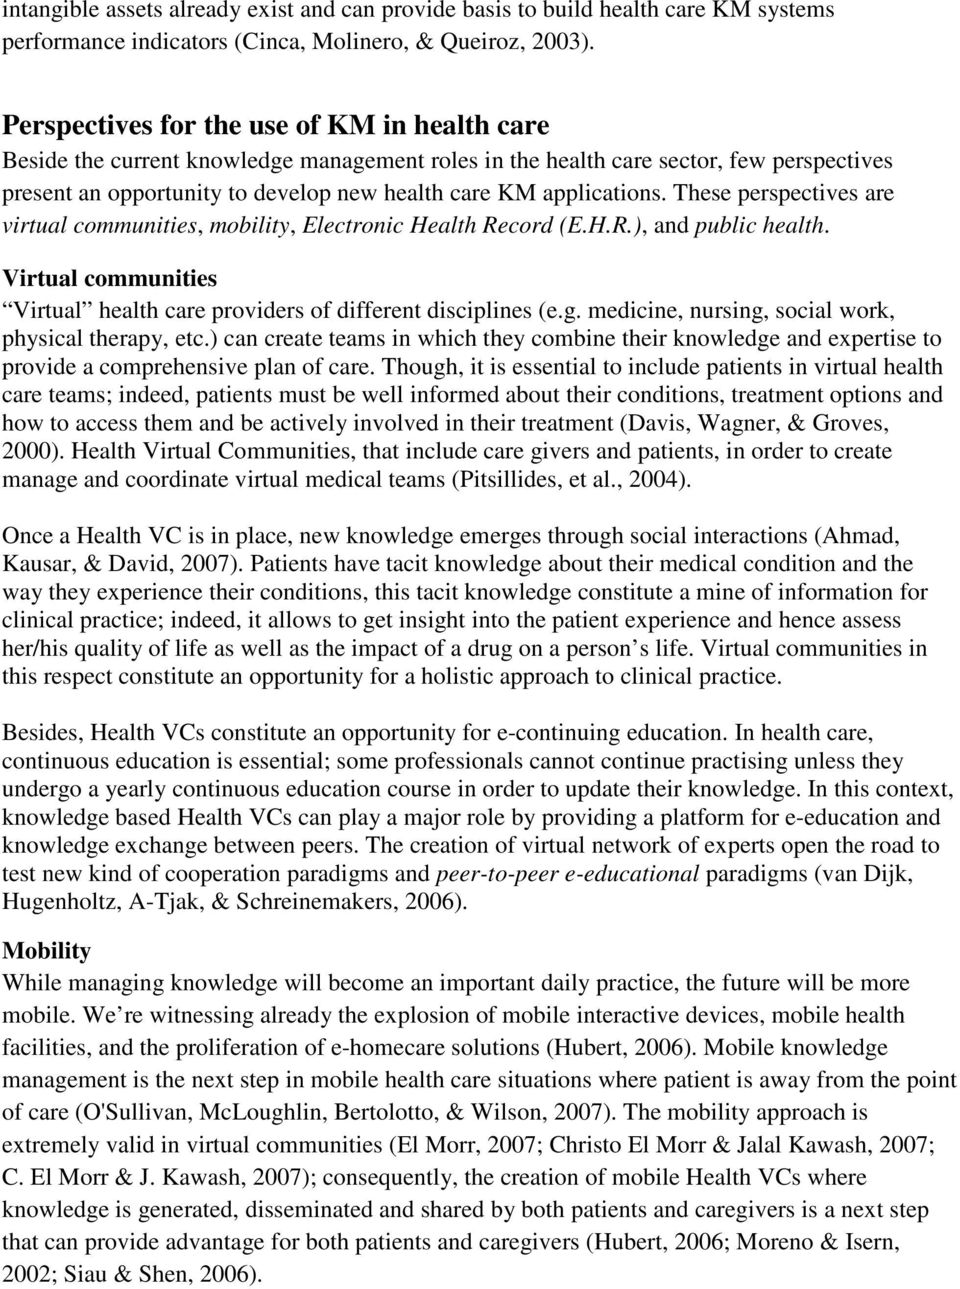 applications. These perspectives are virtual communities, mobility, Electronic Health Record (E.H.R.), and public health. Virtual communities Virtual health care providers of different disciplines (e.